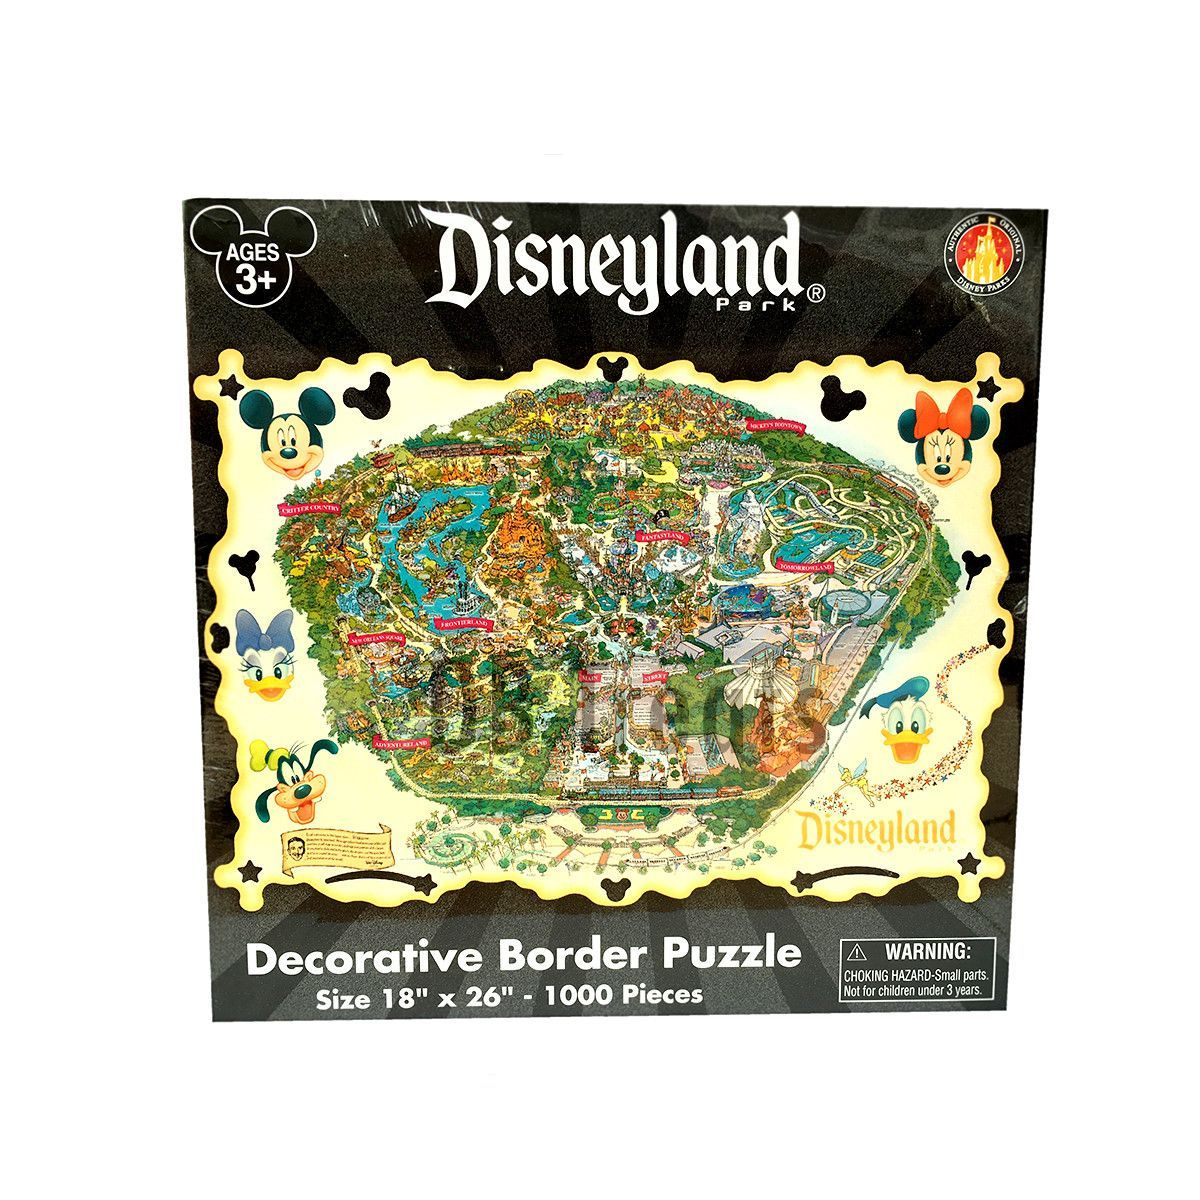 Disneyland theme park map 1000 piece jigsaw puzzle puzzles disneyland theme park map 1000 piece jigsaw puzzle gumiabroncs Image collections